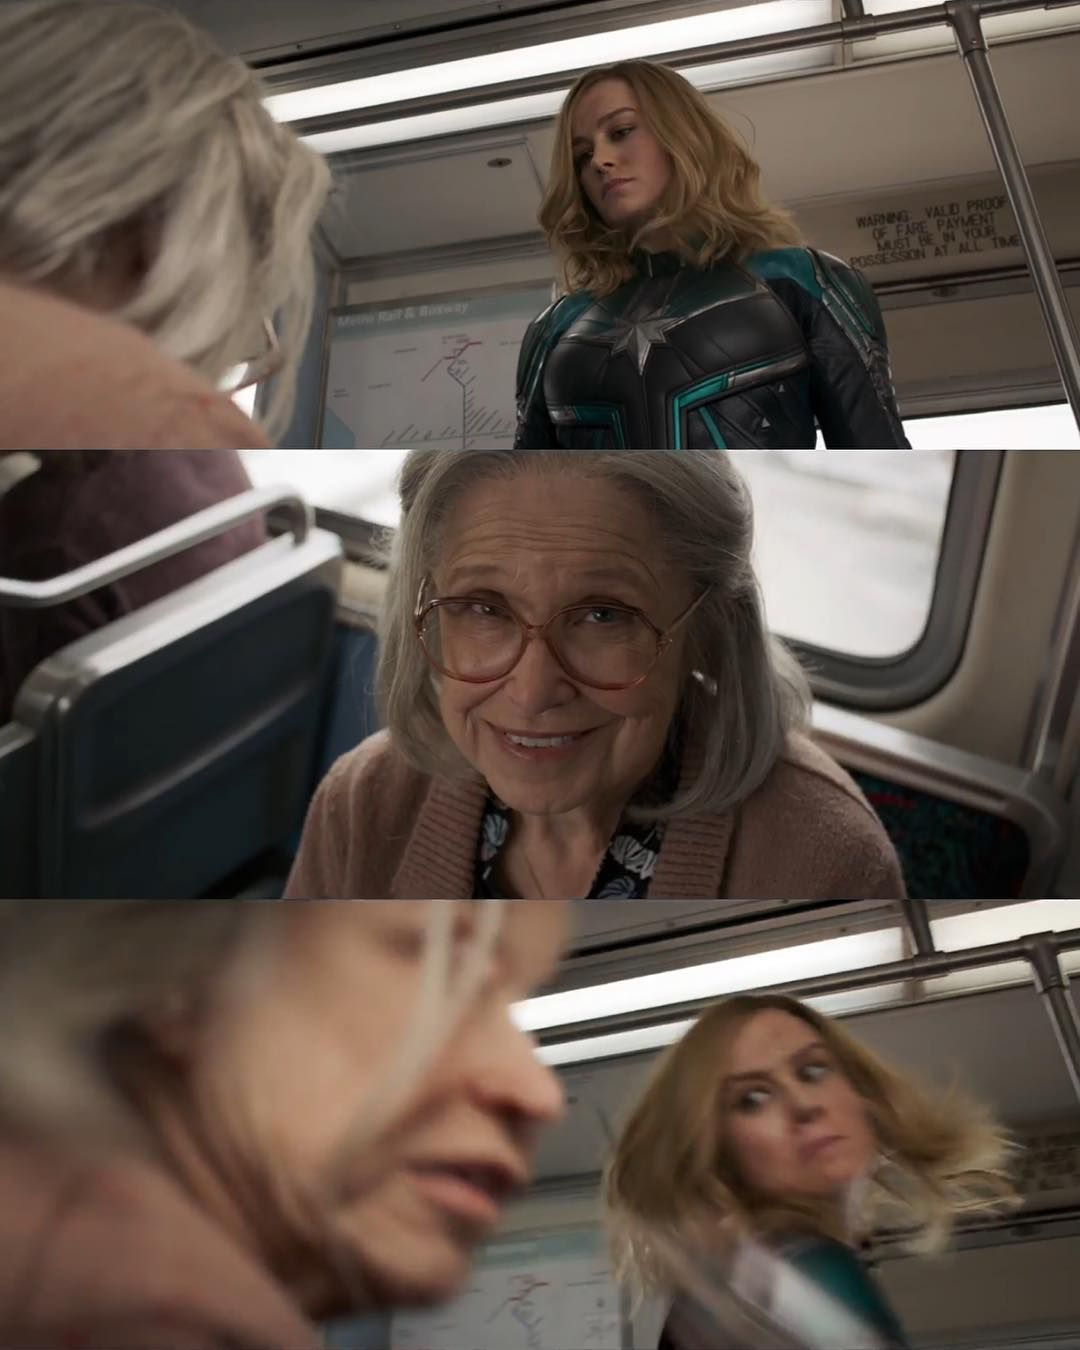 captain marvel punching old ladies😤 jk we know it's a skrull